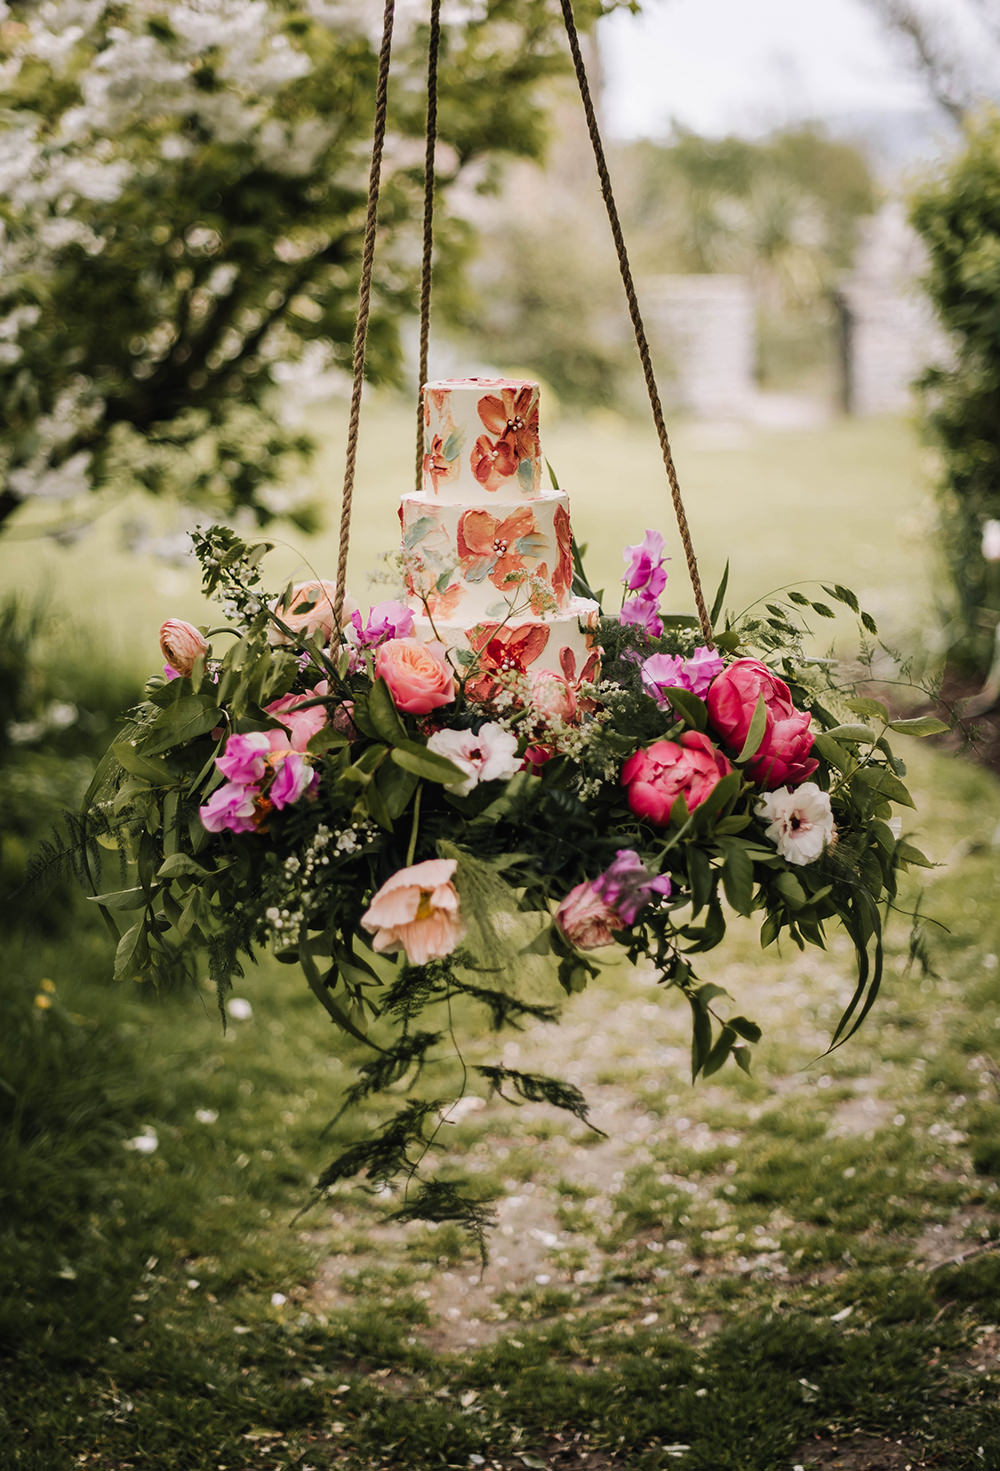 Cake Table Suspended Hanging Swing Flowers Grenery Pink Coral Floral Wedding Ideas Birgitta Zoutman Photography